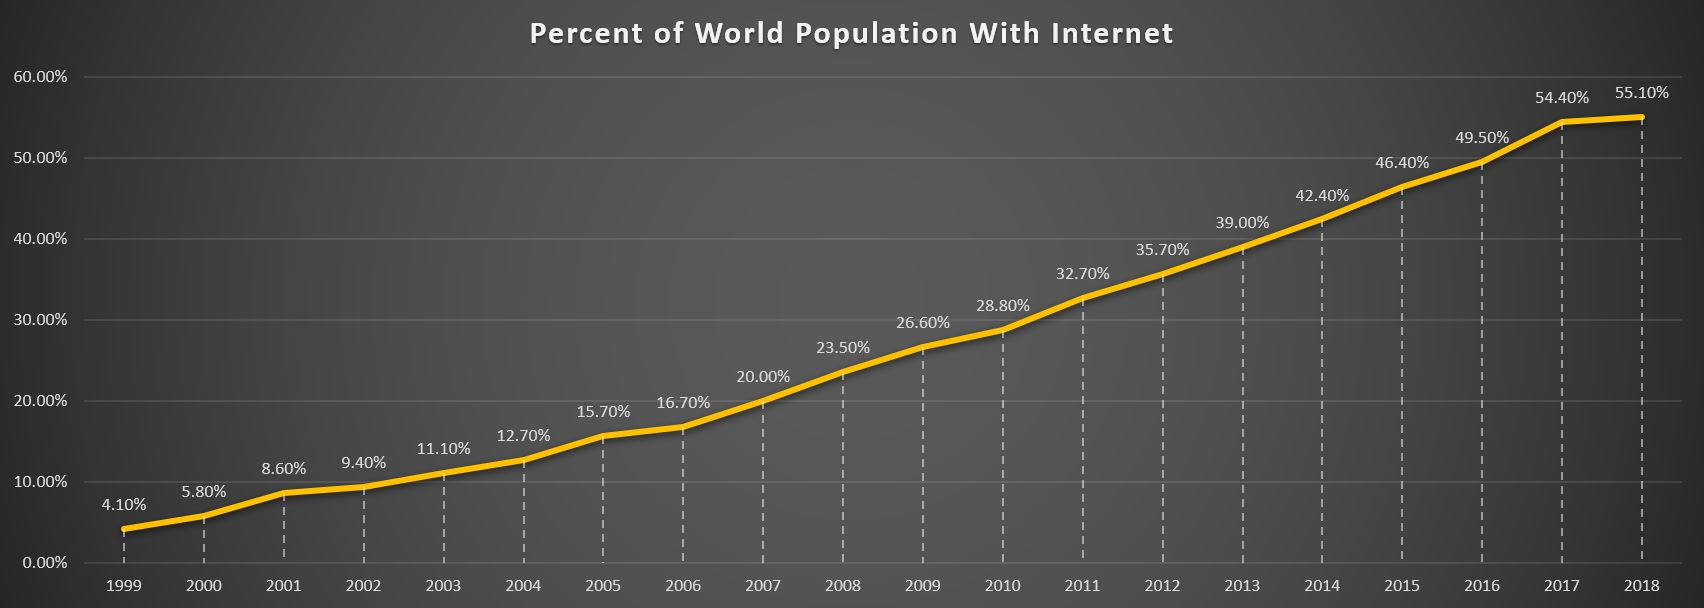 Figure 1. Growth of worldwide internet access from 1999 to 2018